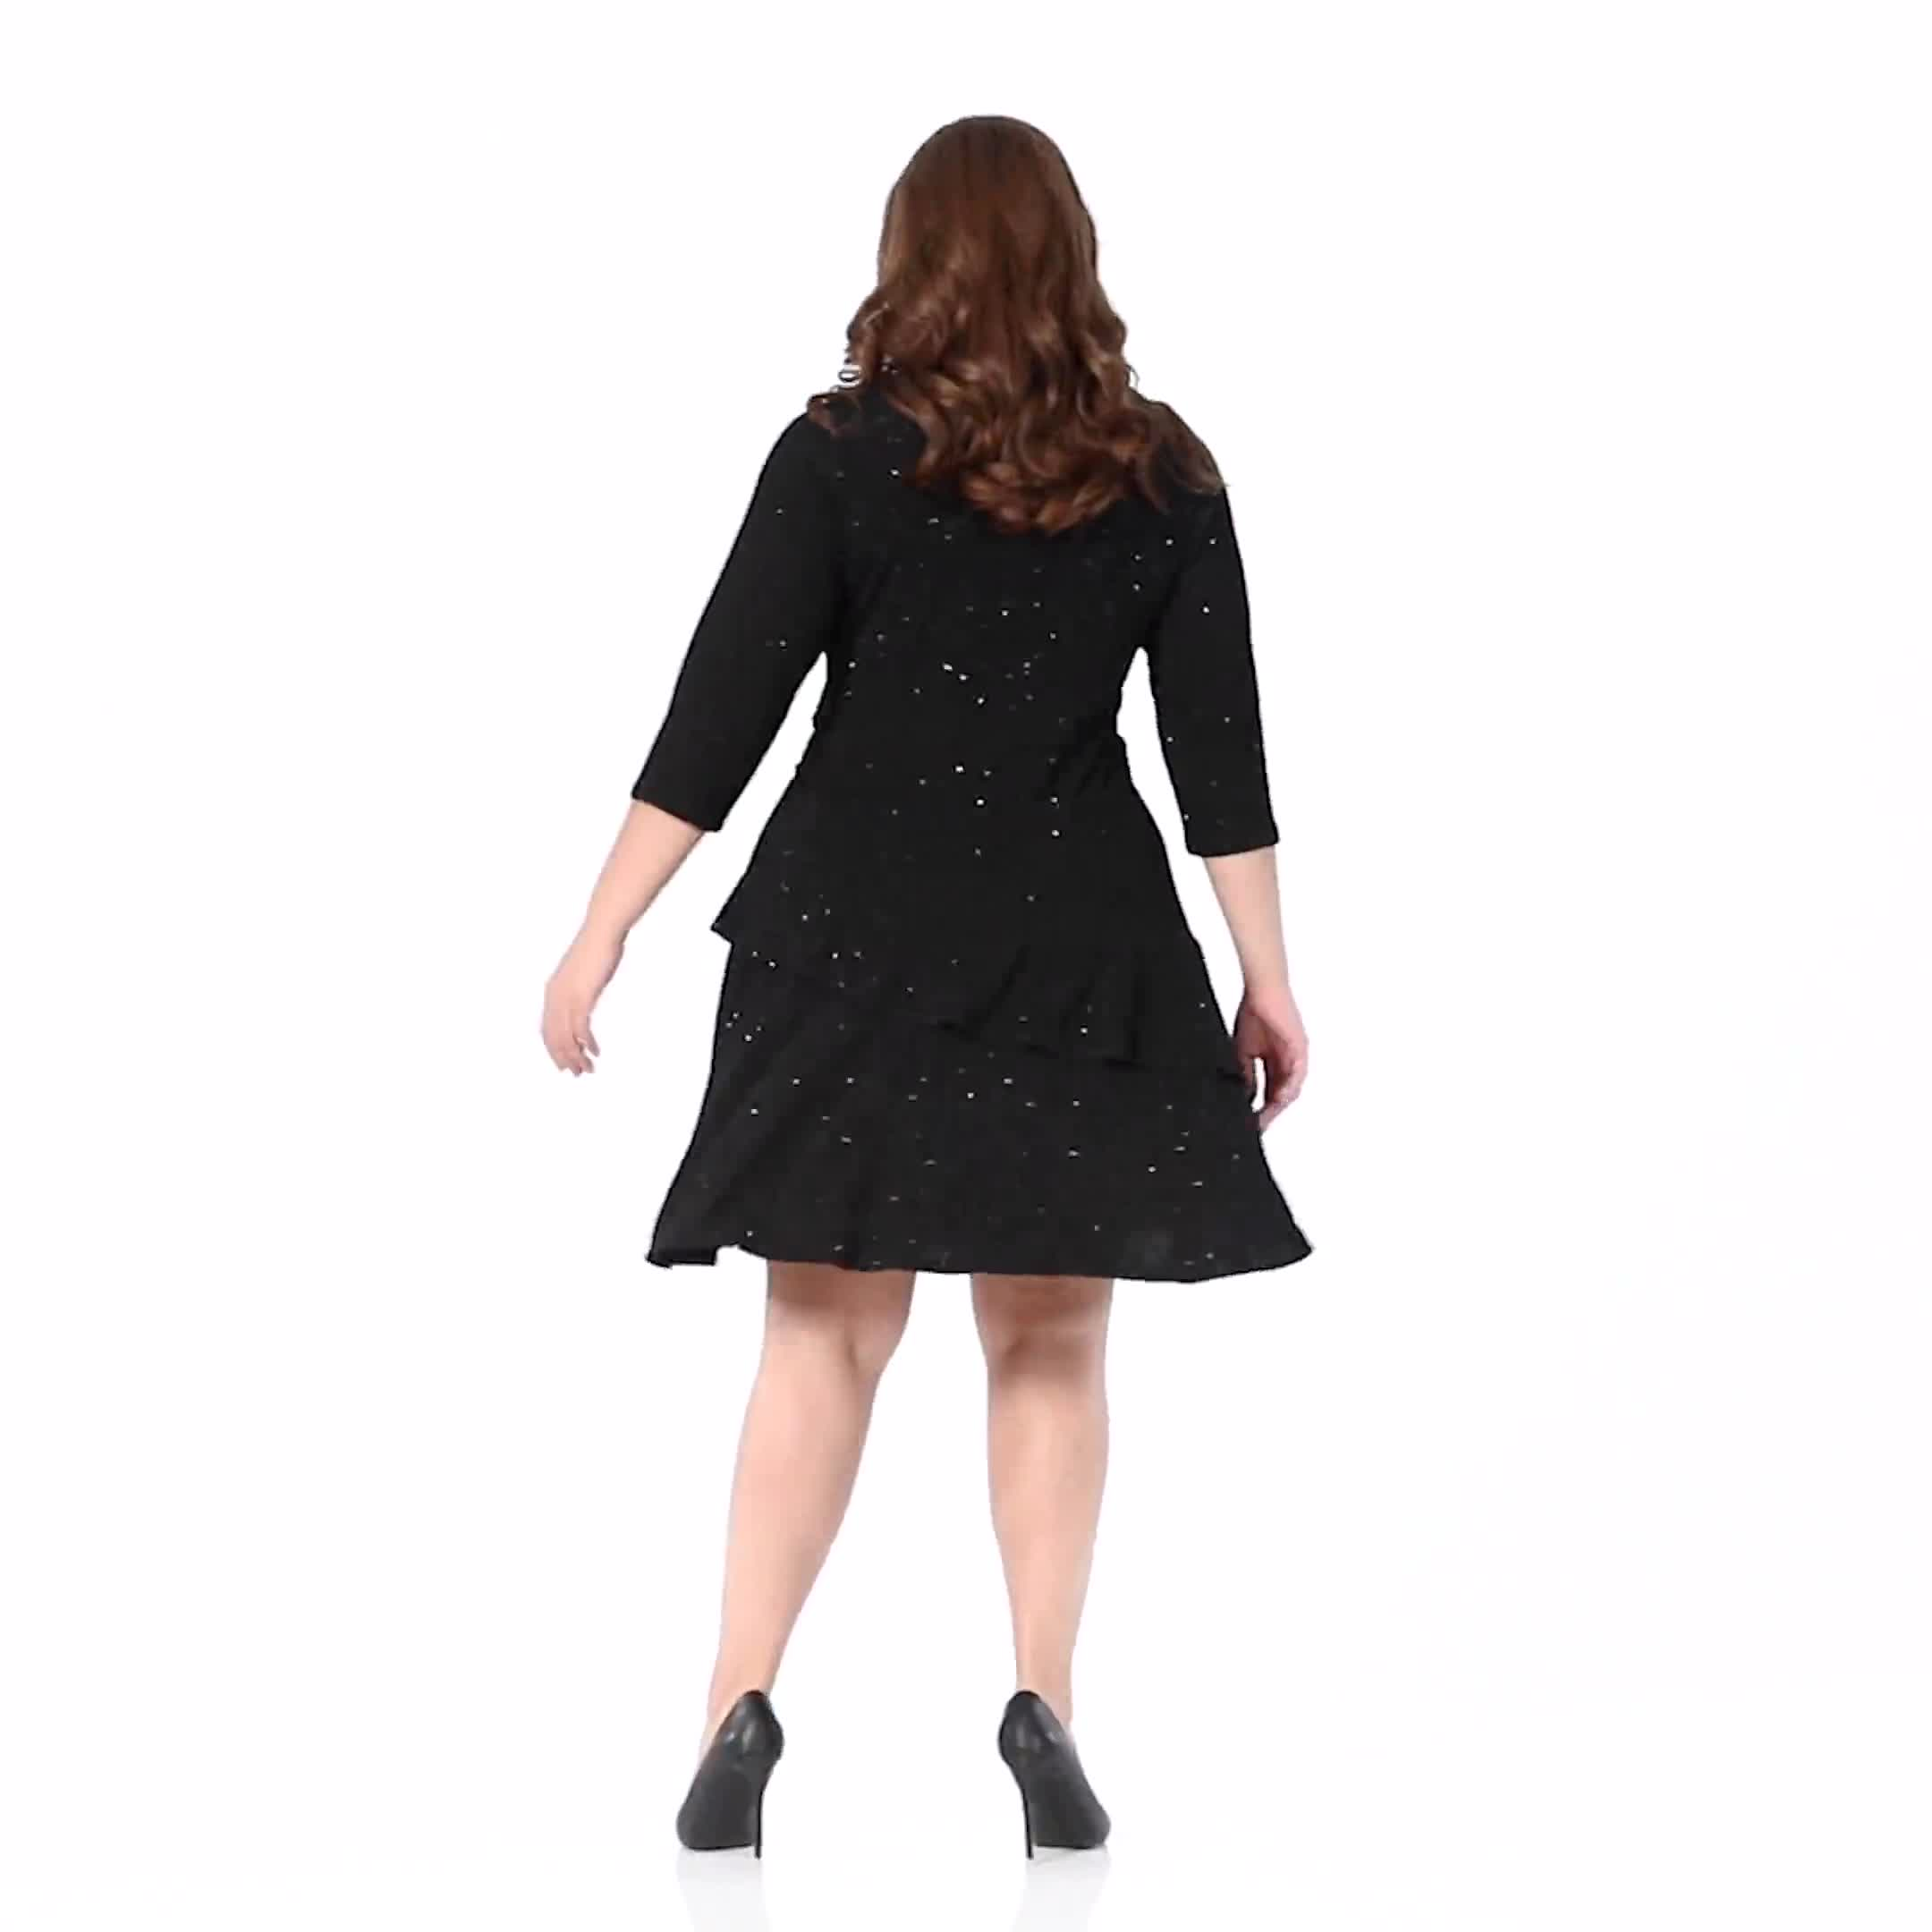 Tiered knit Dress - Plus - Video